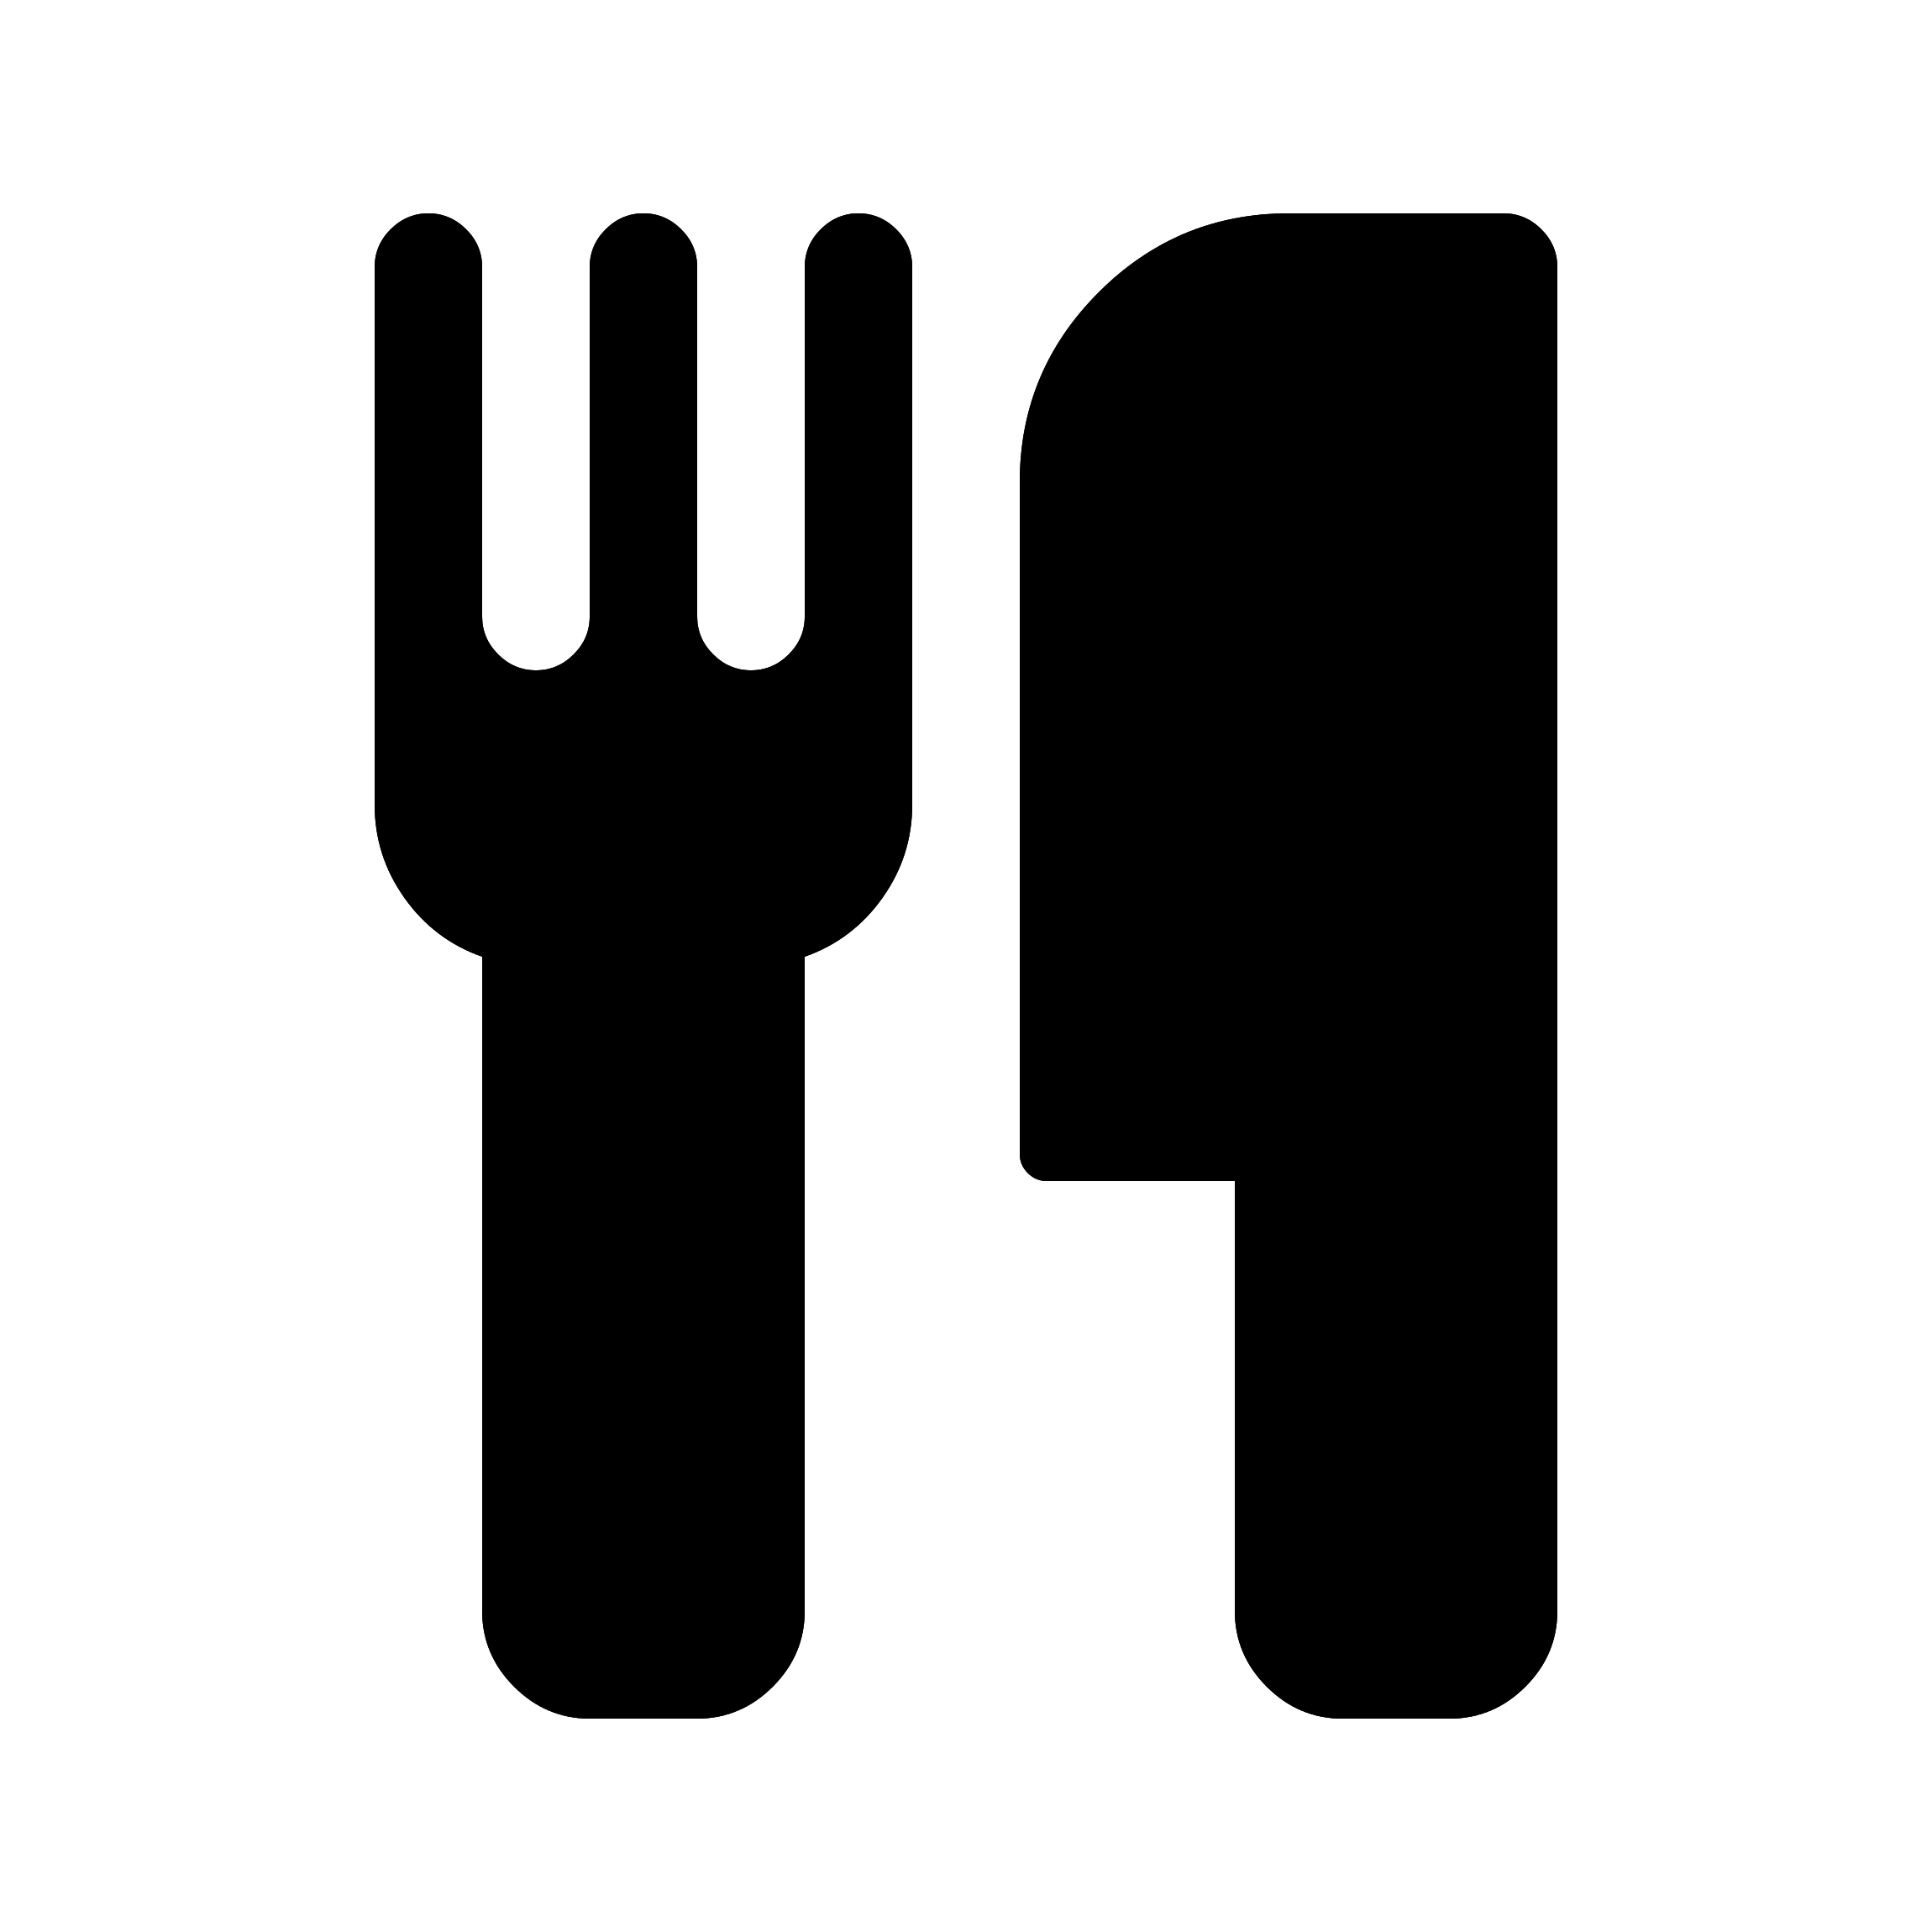 data/images/cutlery.png